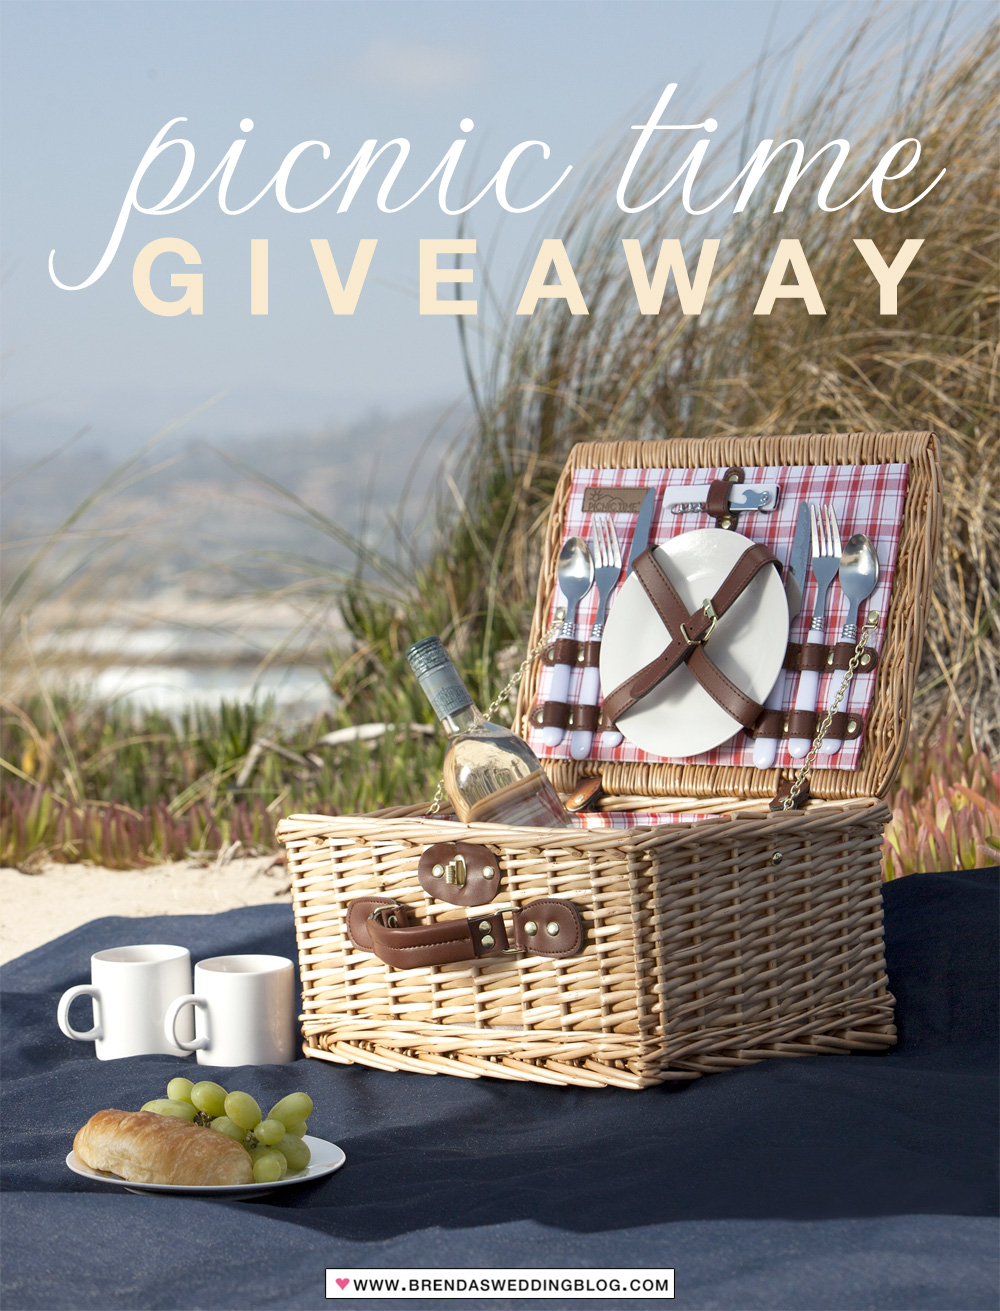 It's a picnic basket and blanket giveaway to celebrate Wedding Season on www.BrendasWeddingBlog.com